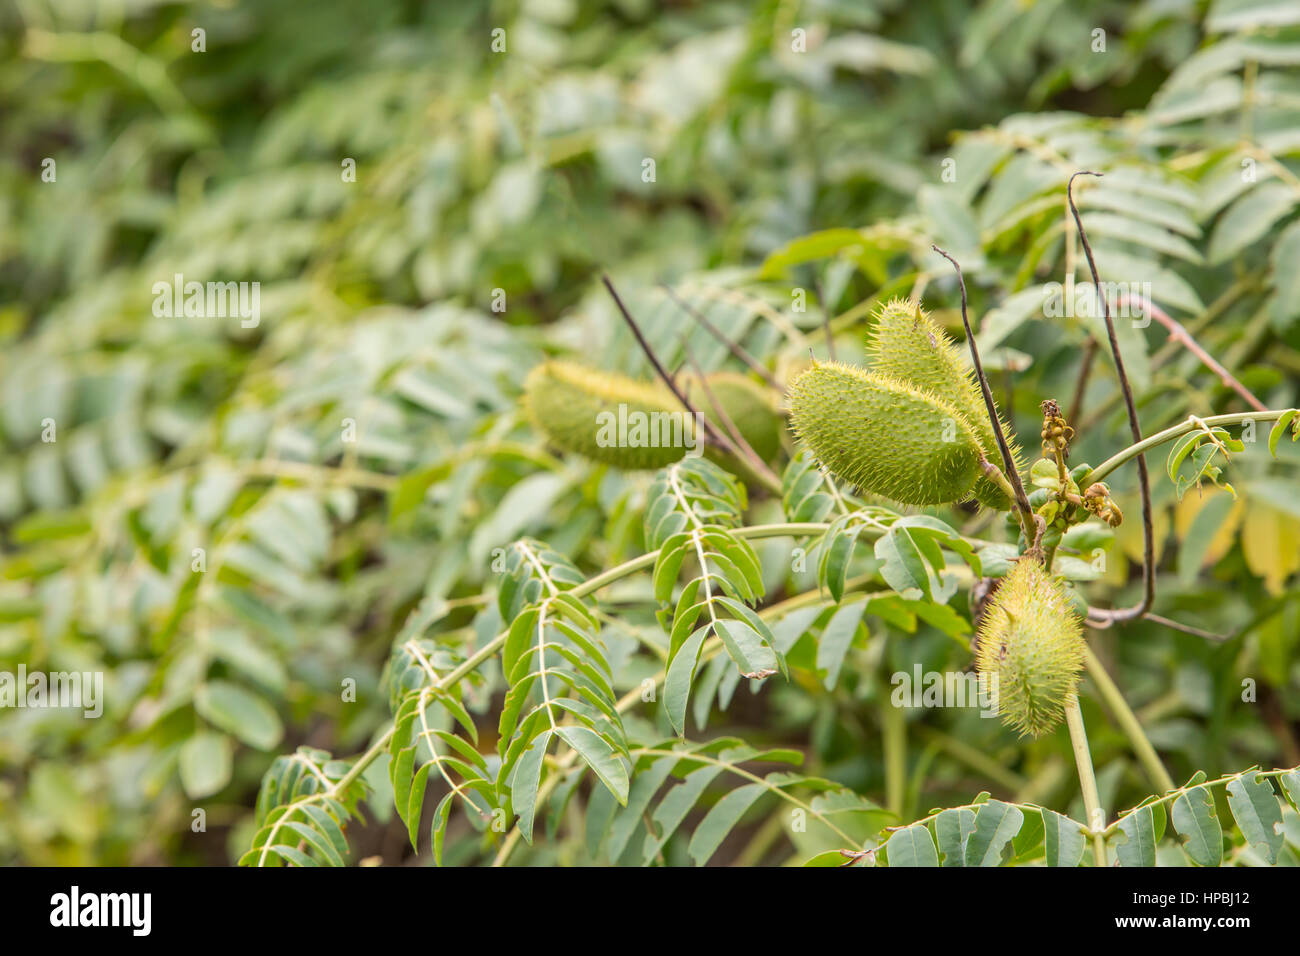 Florida Trees With Pods Stock Photo 134250622 Alamy